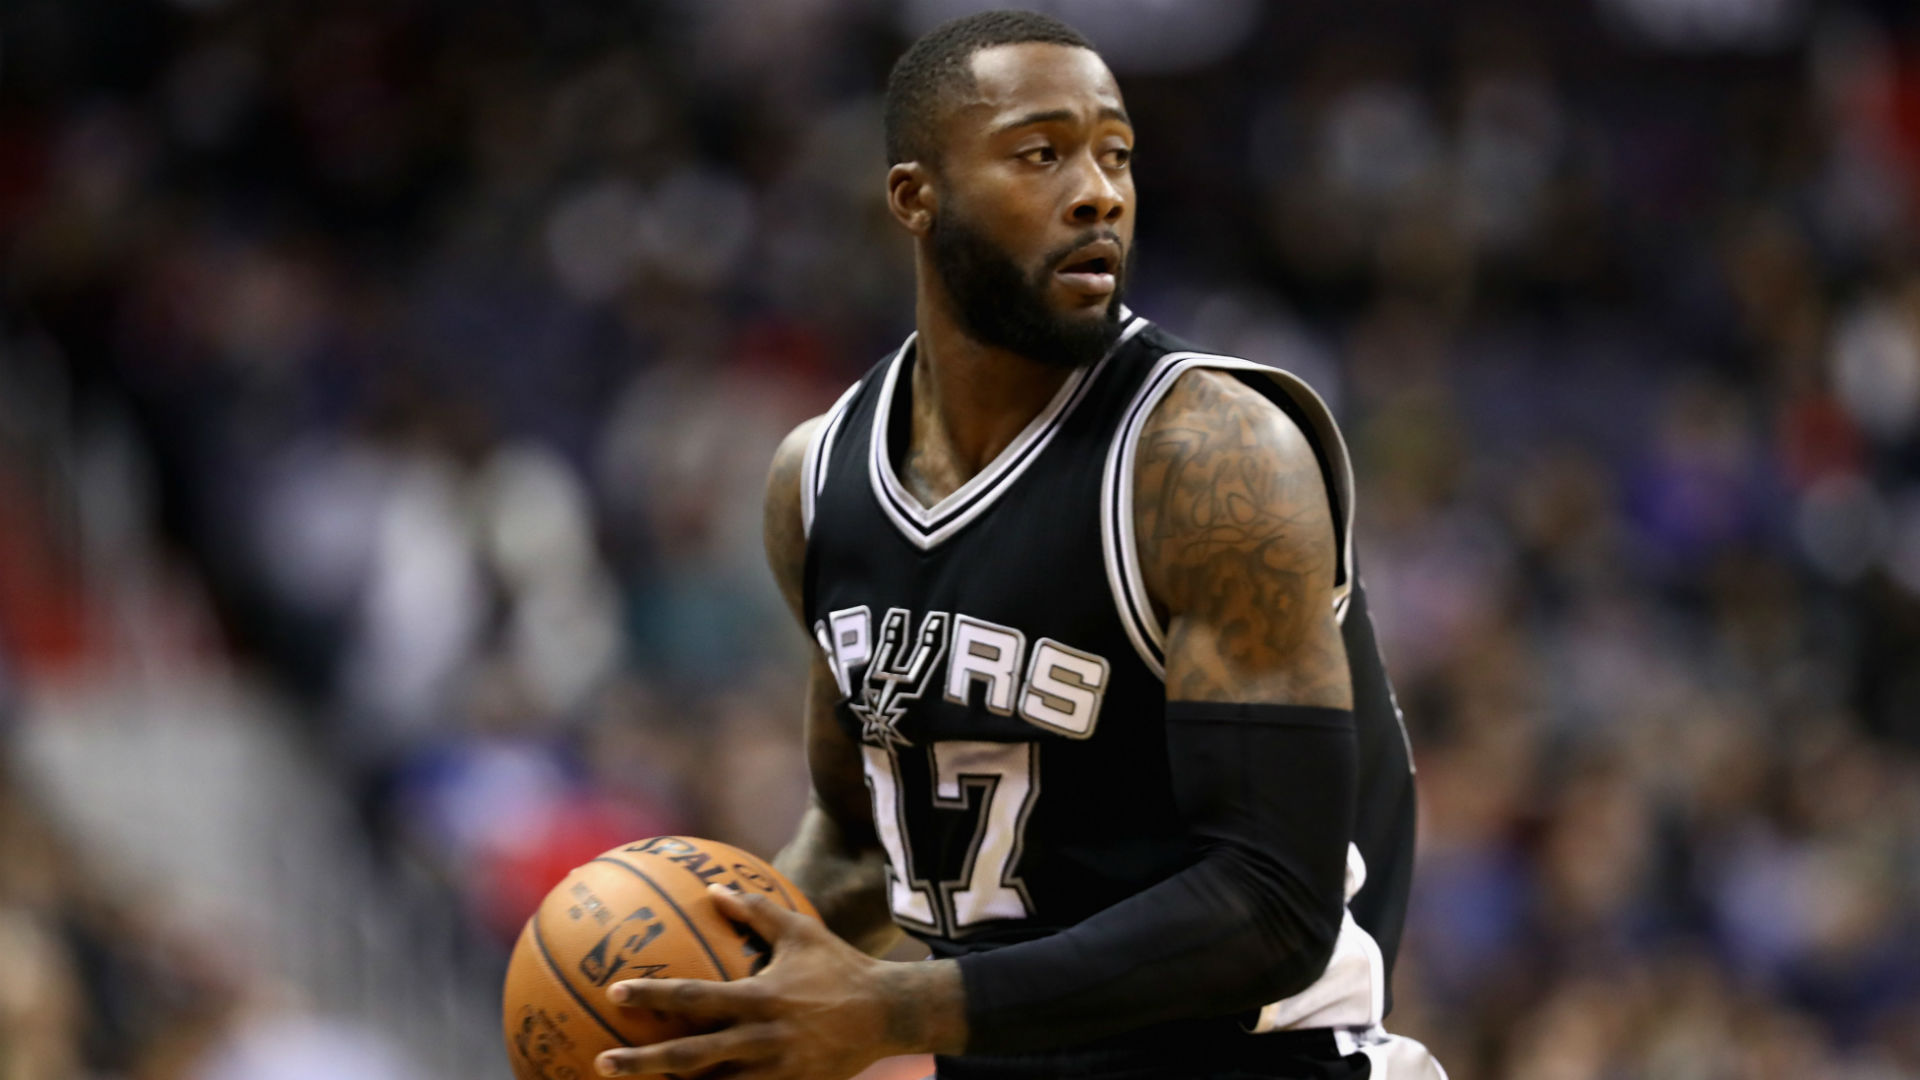 Jonathon Simmons now unrestricted free agent as Spurs renounce rights